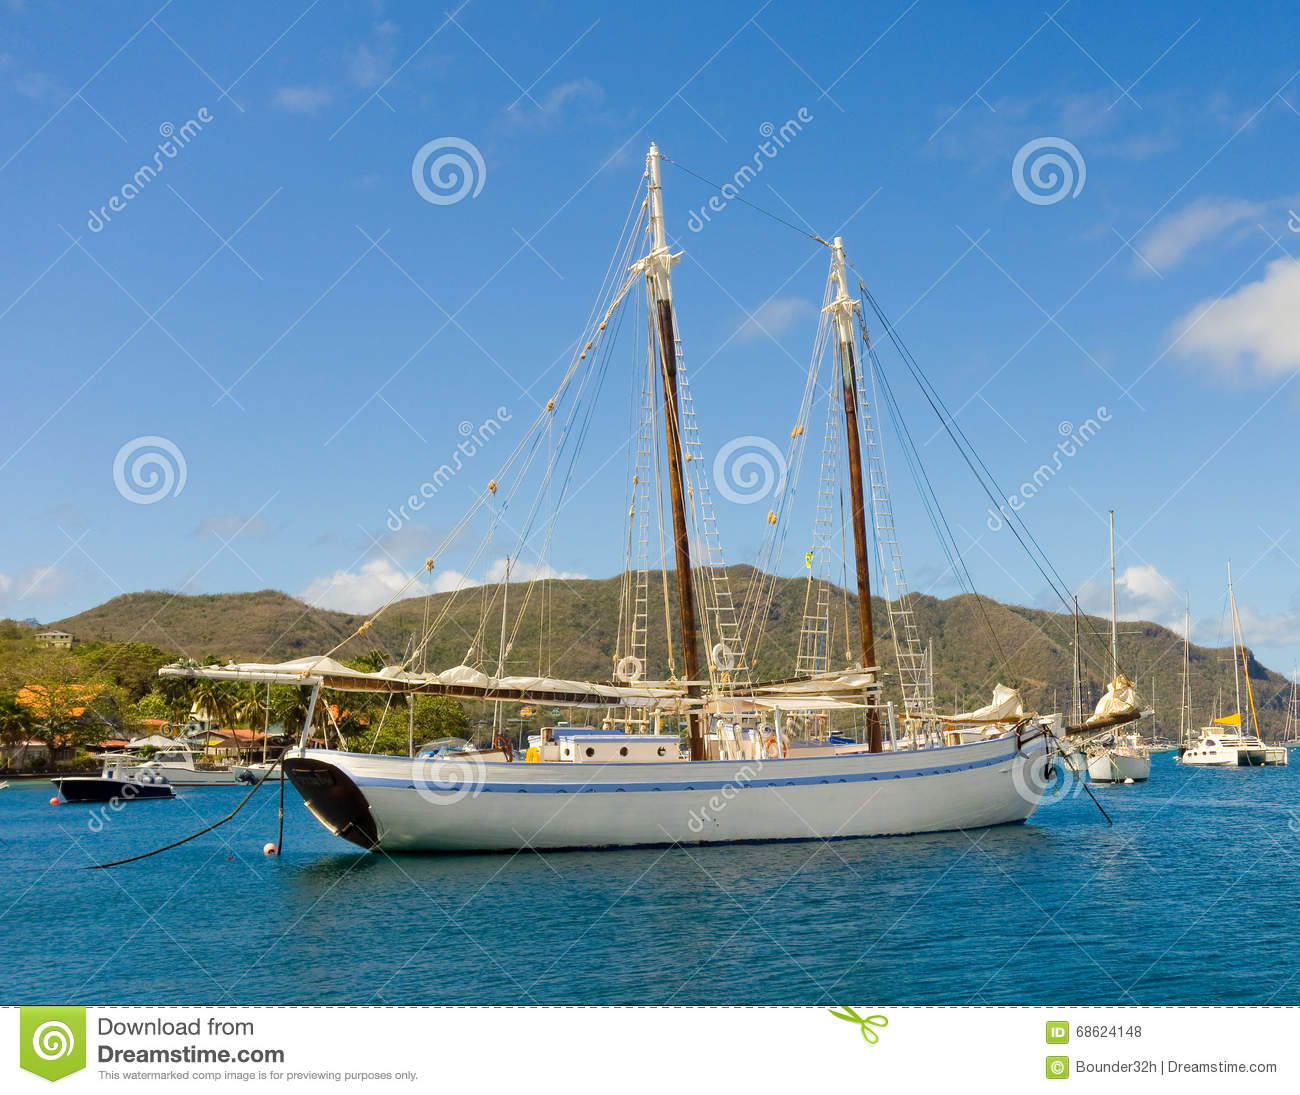 An Old Wooden Schooner At Anchor In The Windward Islands Stock Photo